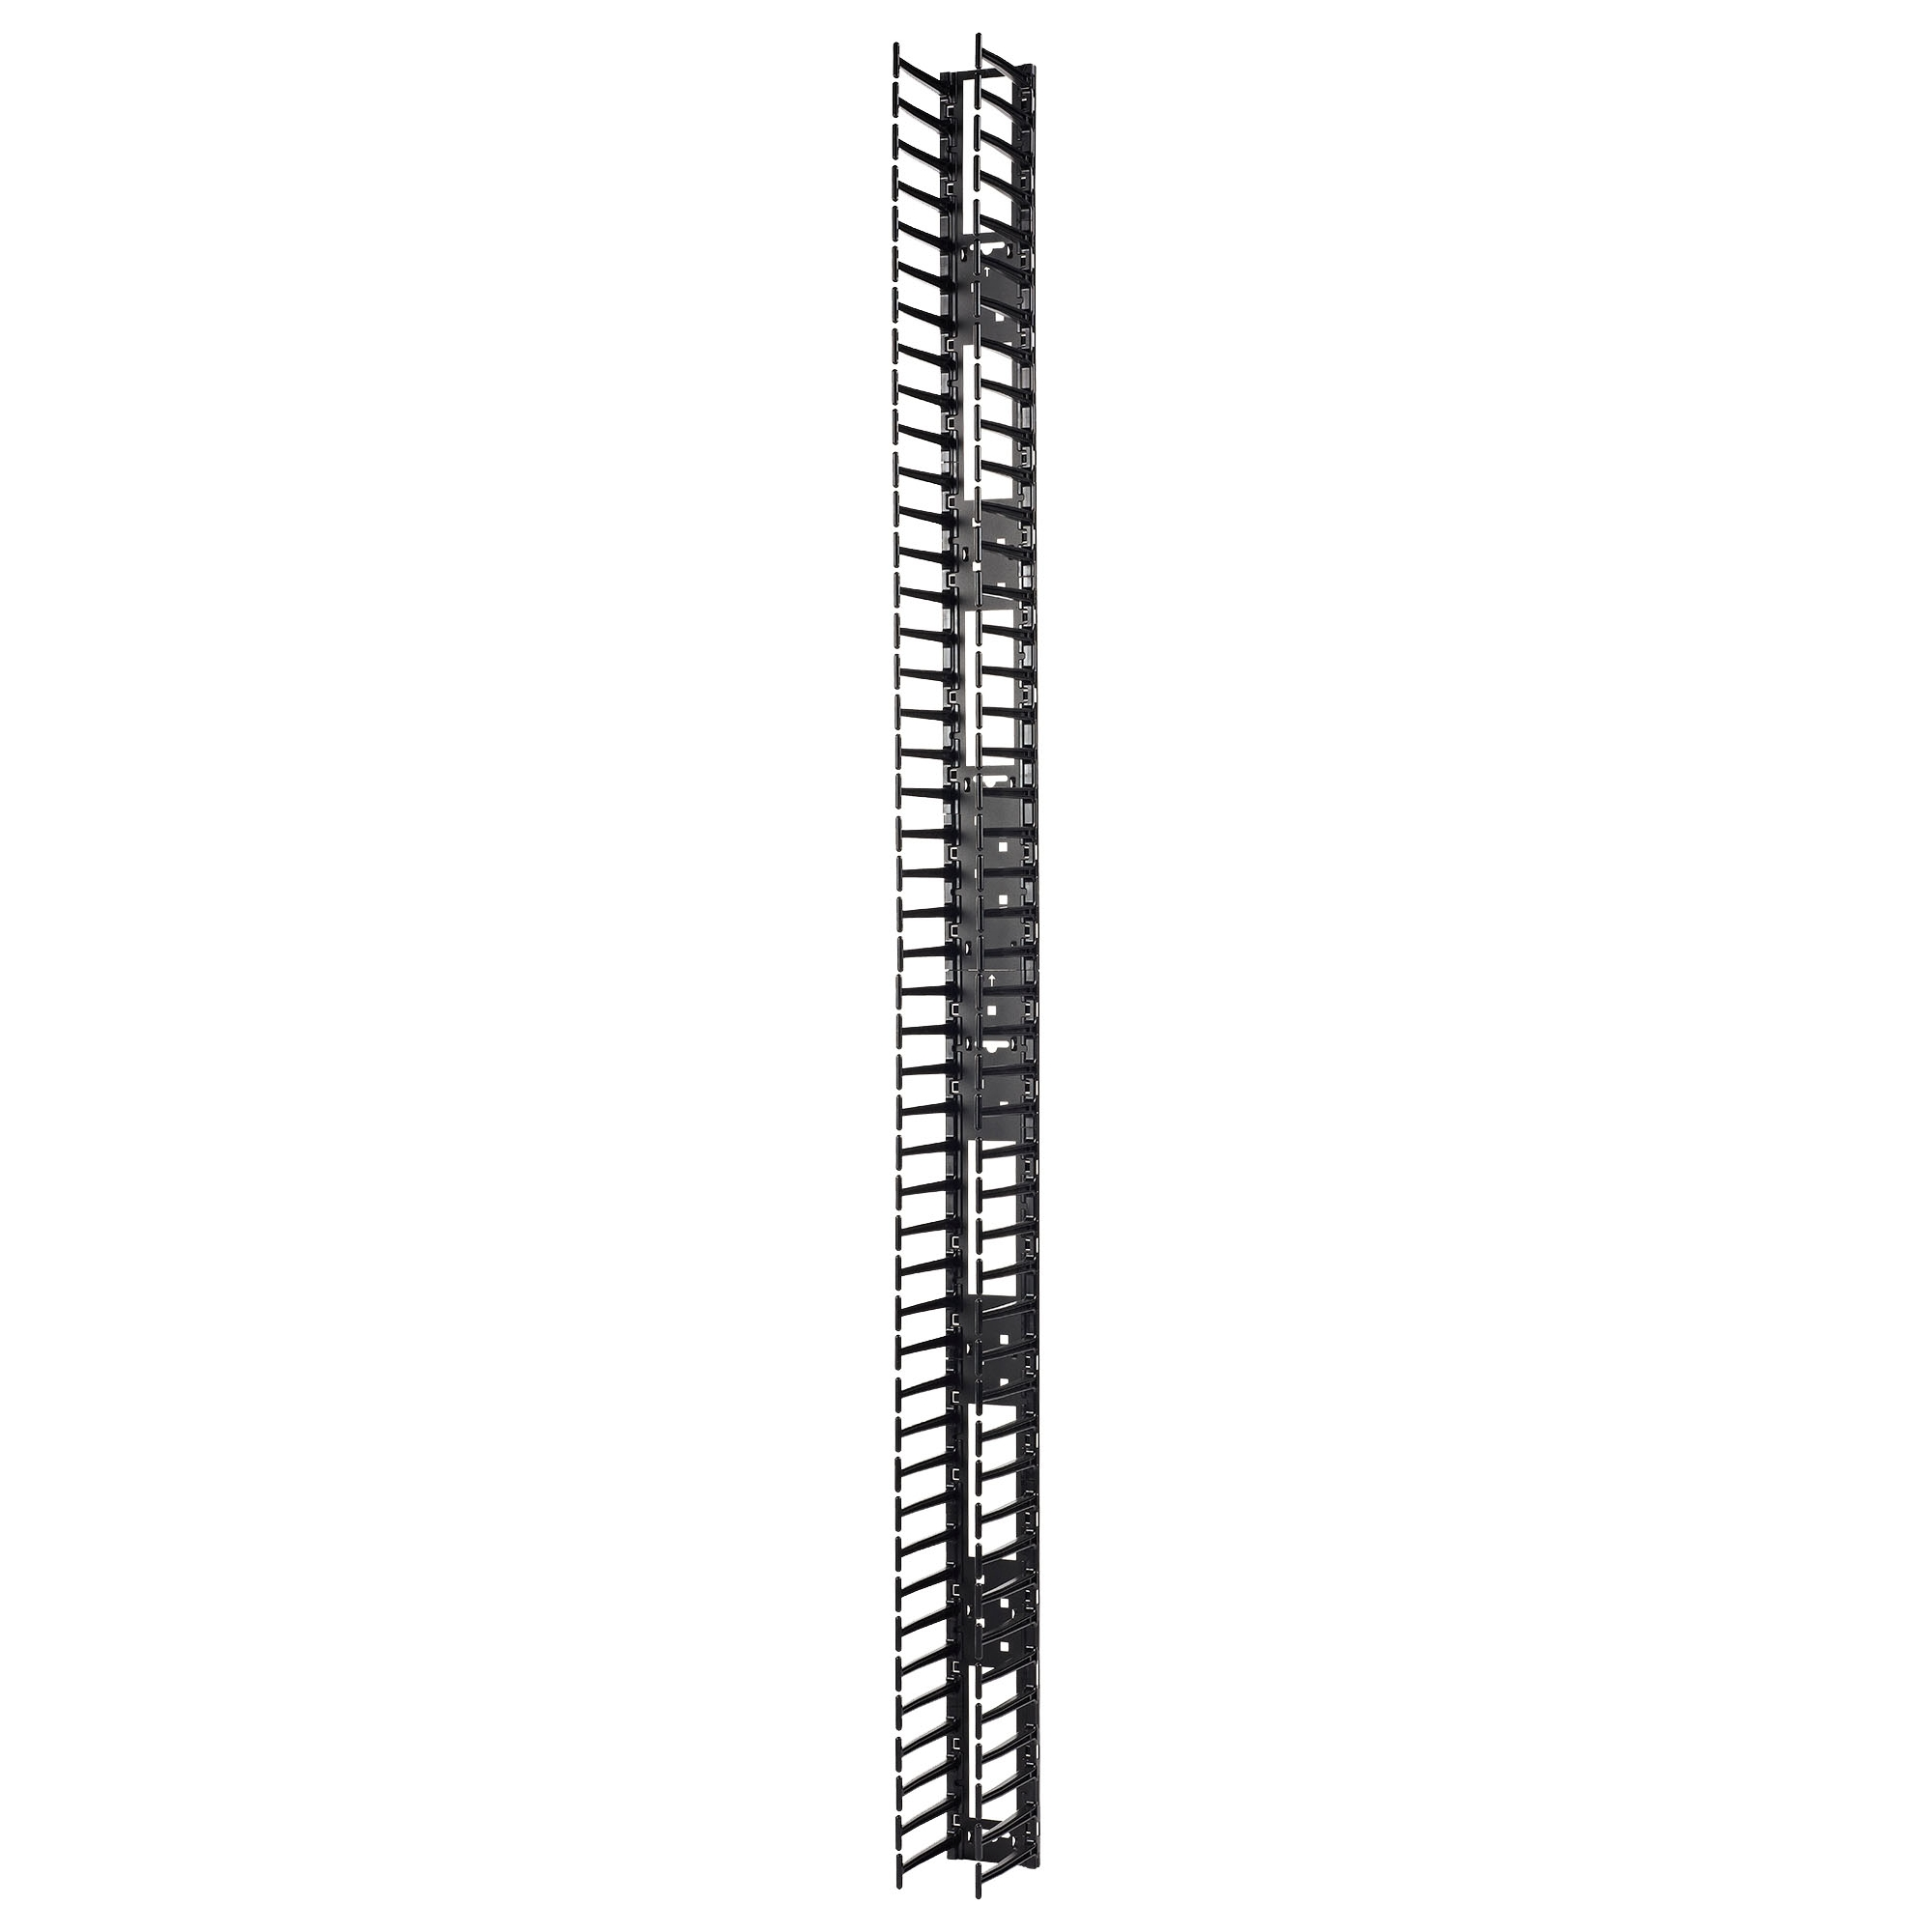 Vertical Cable Manager for NetShelter SX 750mm Wide 48U (Qty 2) - Cable Pass-through - Black - 2 Pack - 48U Rack Height